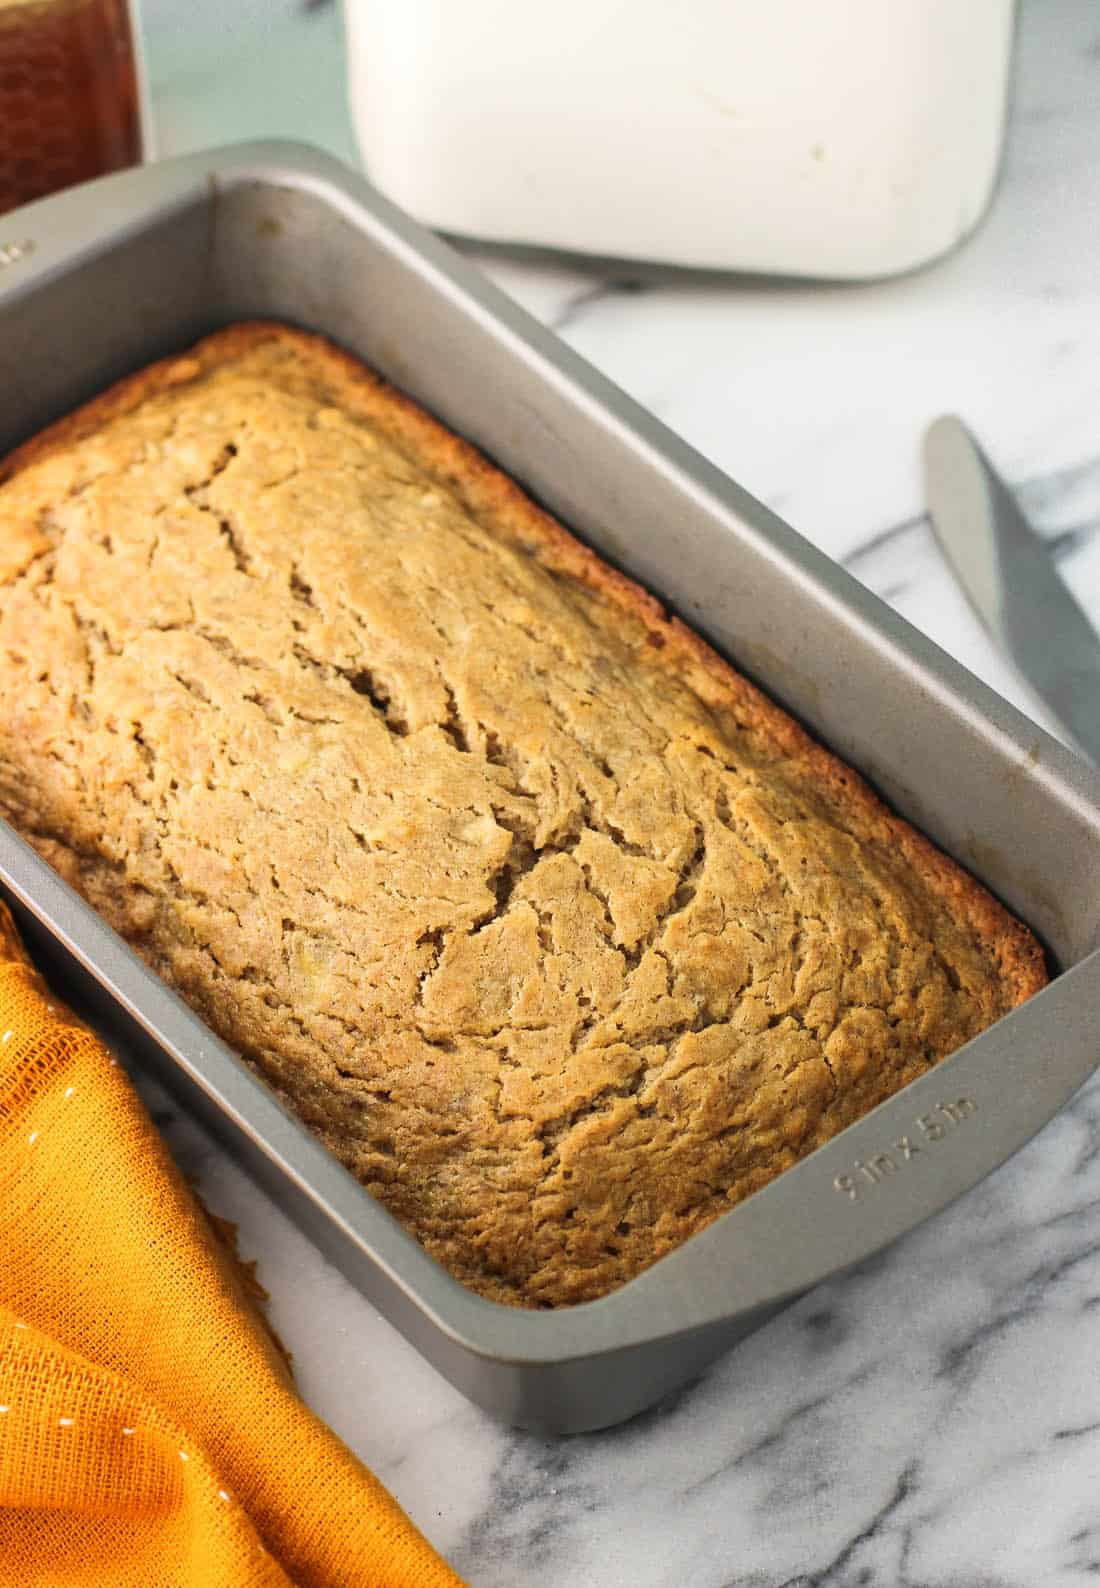 A loaf of baked banana bread in the tin.